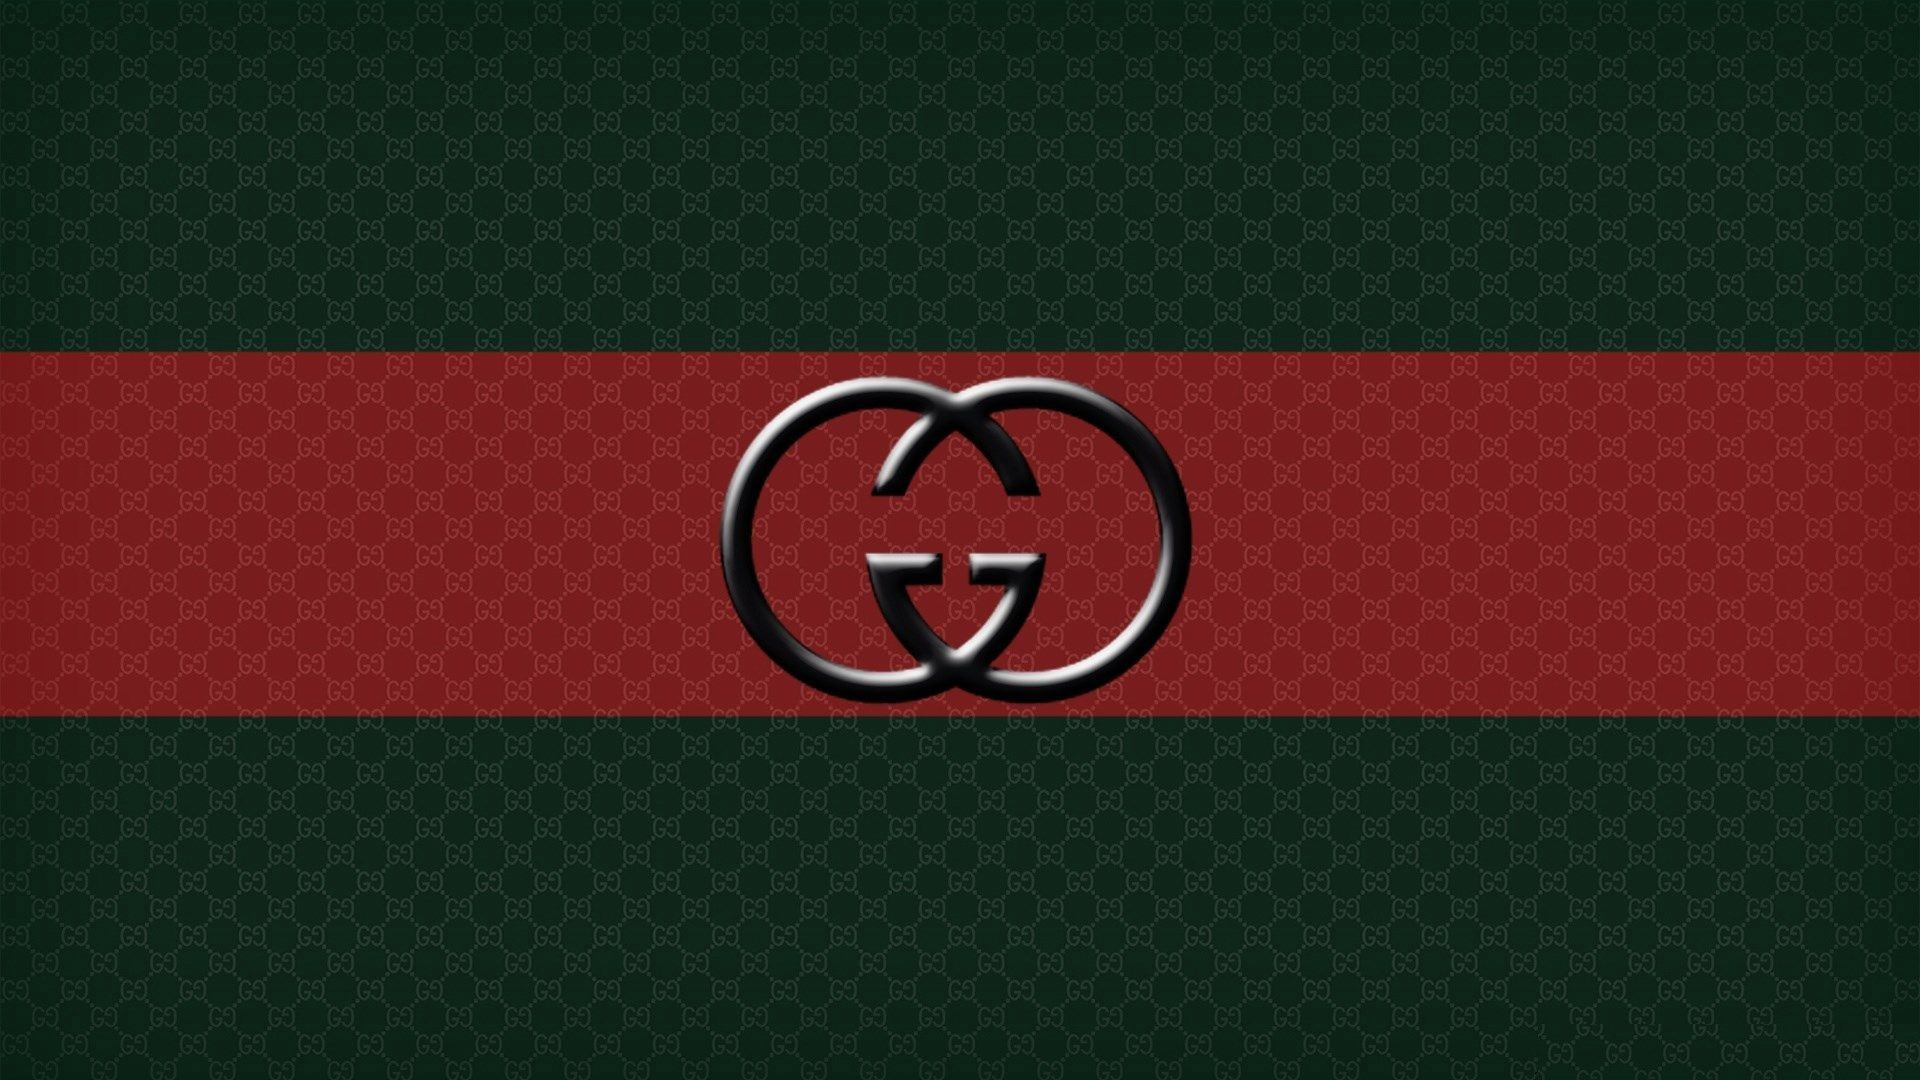 85 Gucci Logo Wallpapers on WallpaperPlay 1920x1080